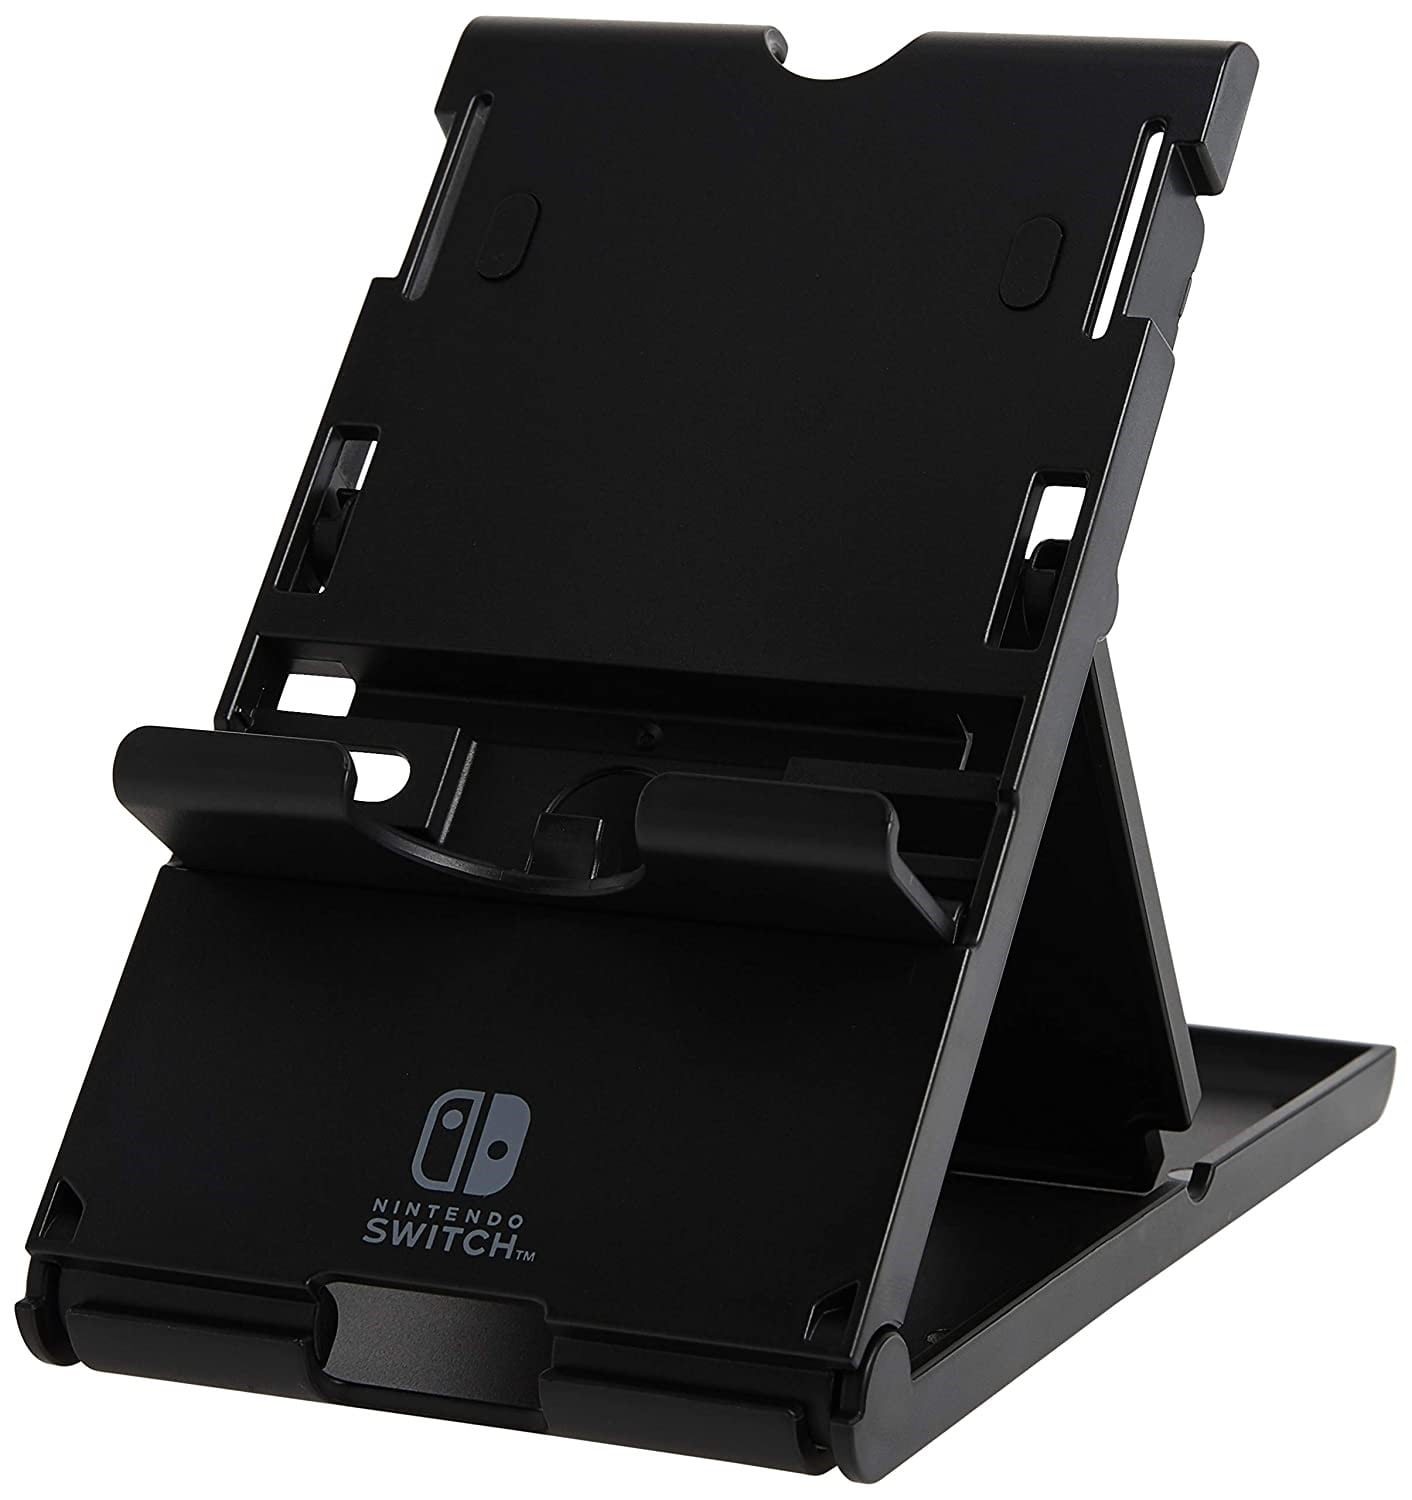 HORI Compact Playstand for Nintendo Switch min